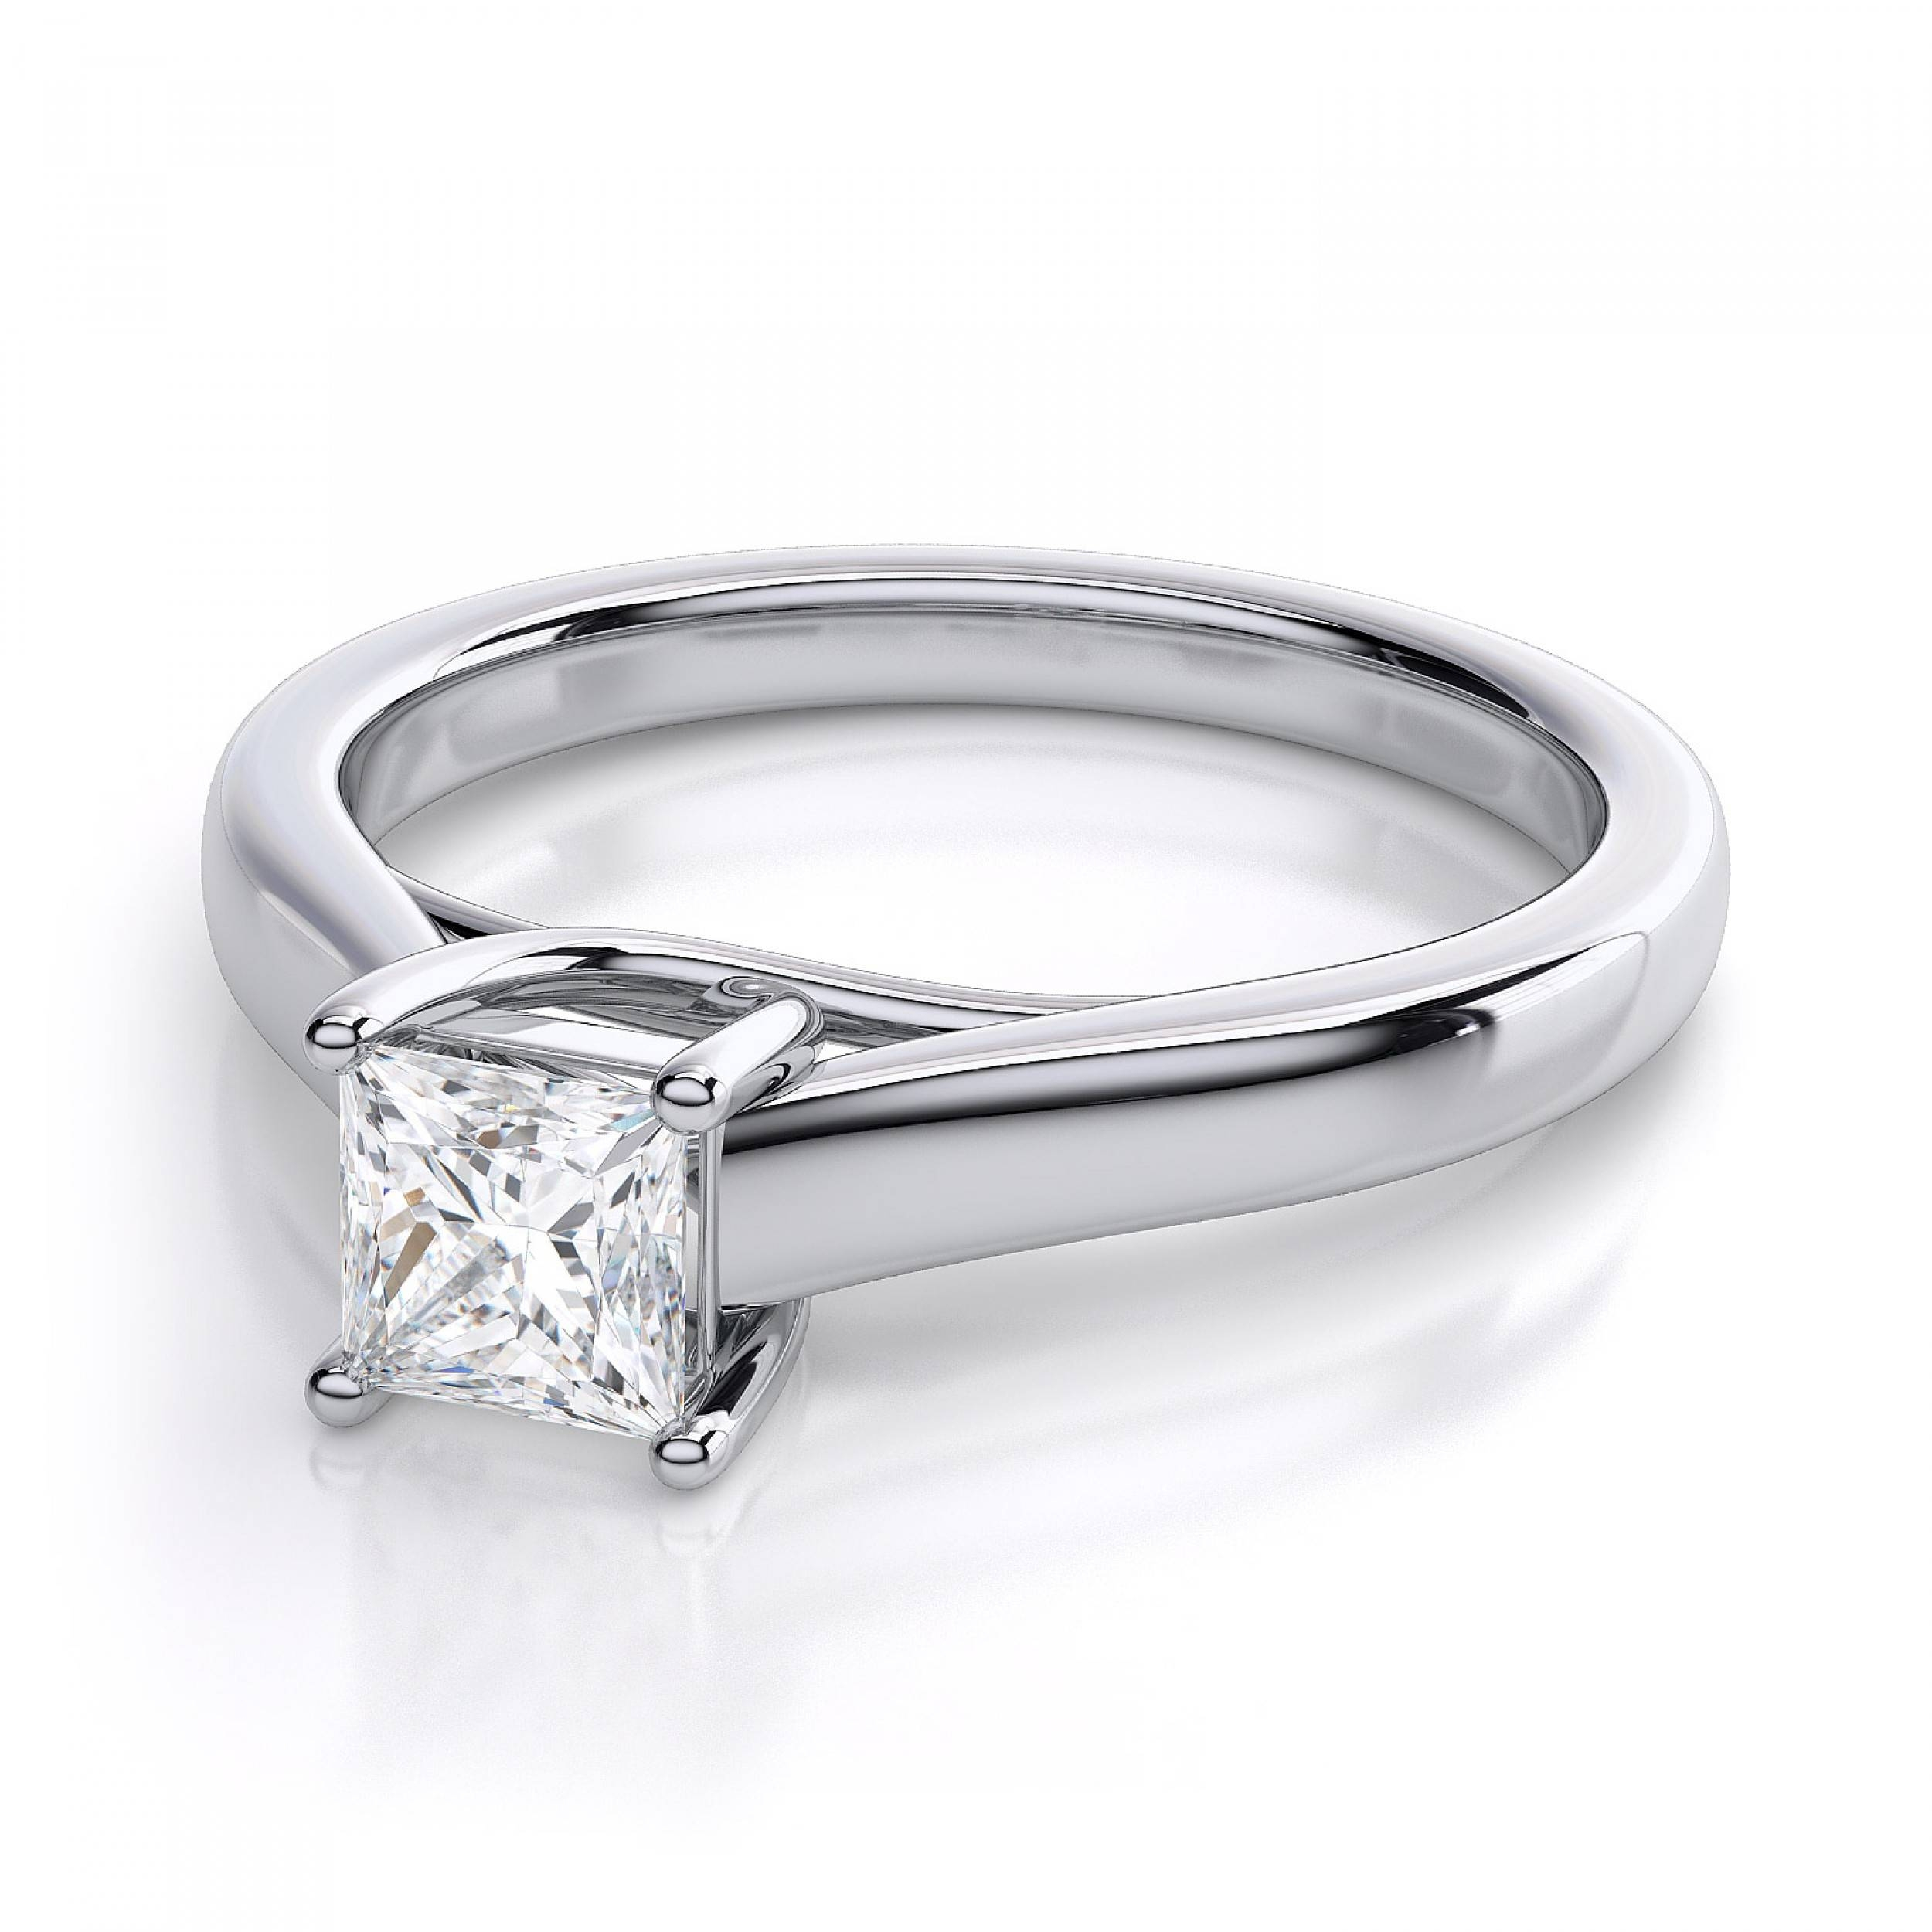 Princess Cut Trellis Solitaire Diamond Engagement Ring In 18k For Engagement Rings 18k White Gold (View 3 of 15)